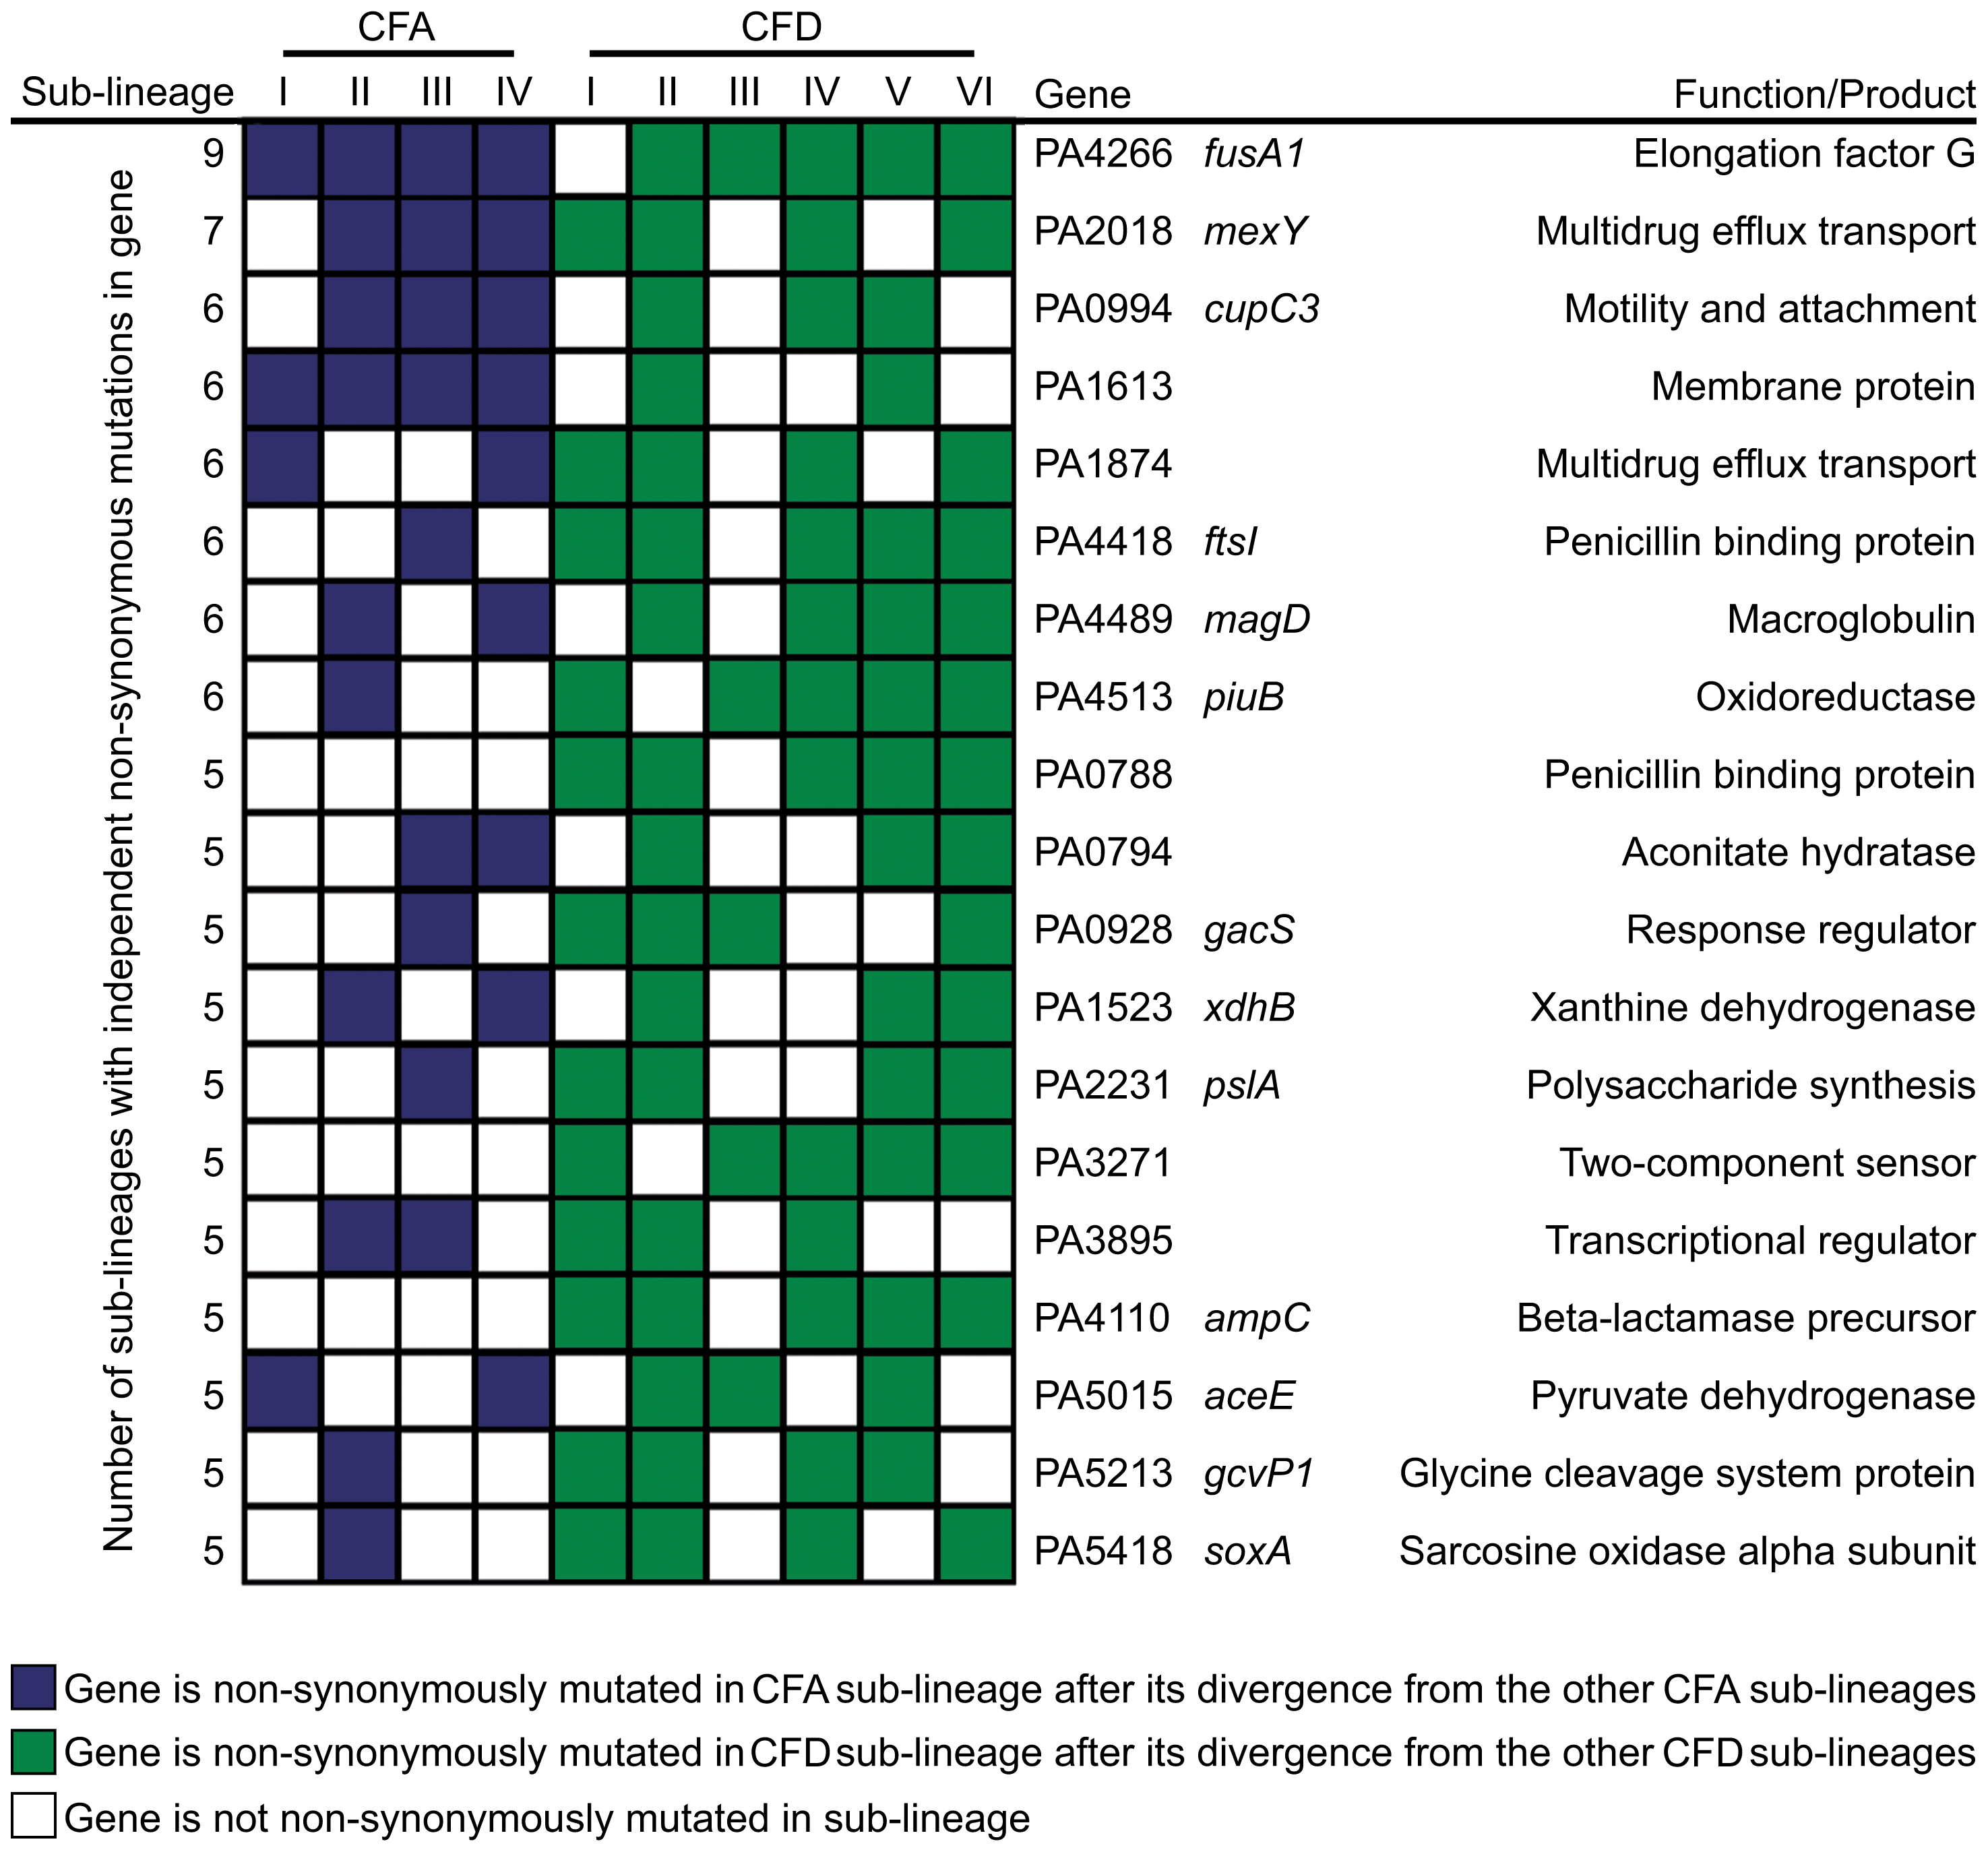 Pathoadaptive genes convergently mutated in CFA and CFD sub-lineages.